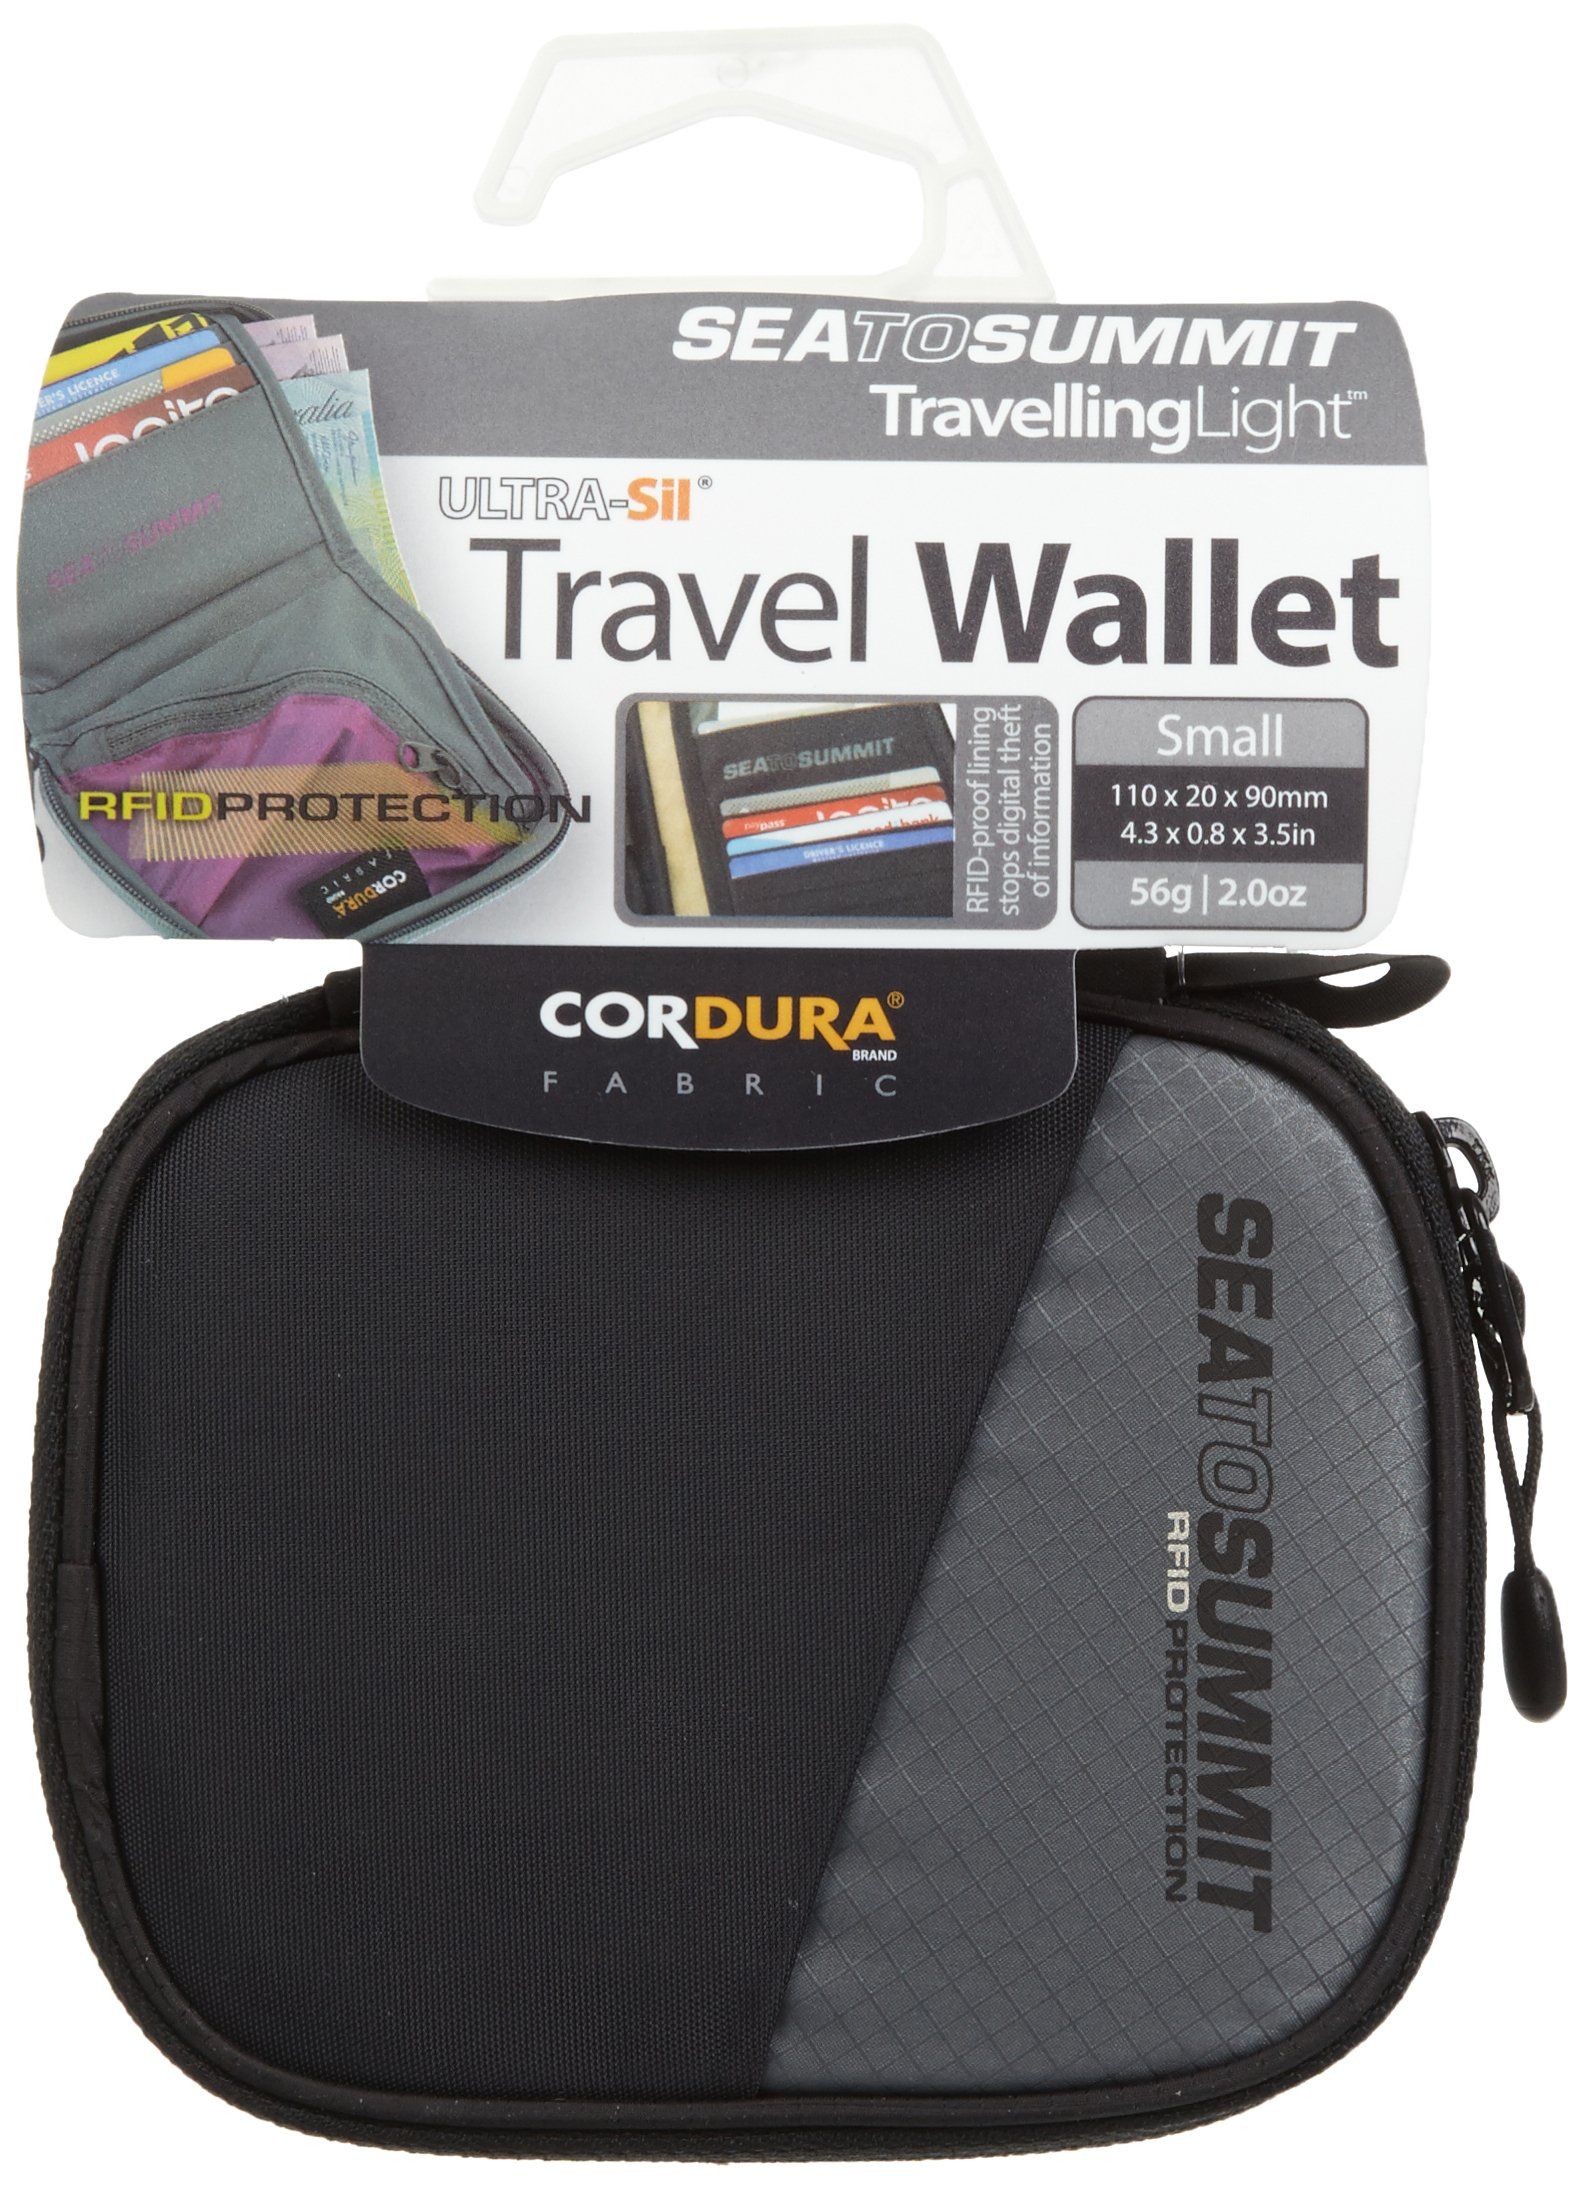 Sea to Summit Travelling Light Travel Wallet RFID, Black, Small by Sea to Summit